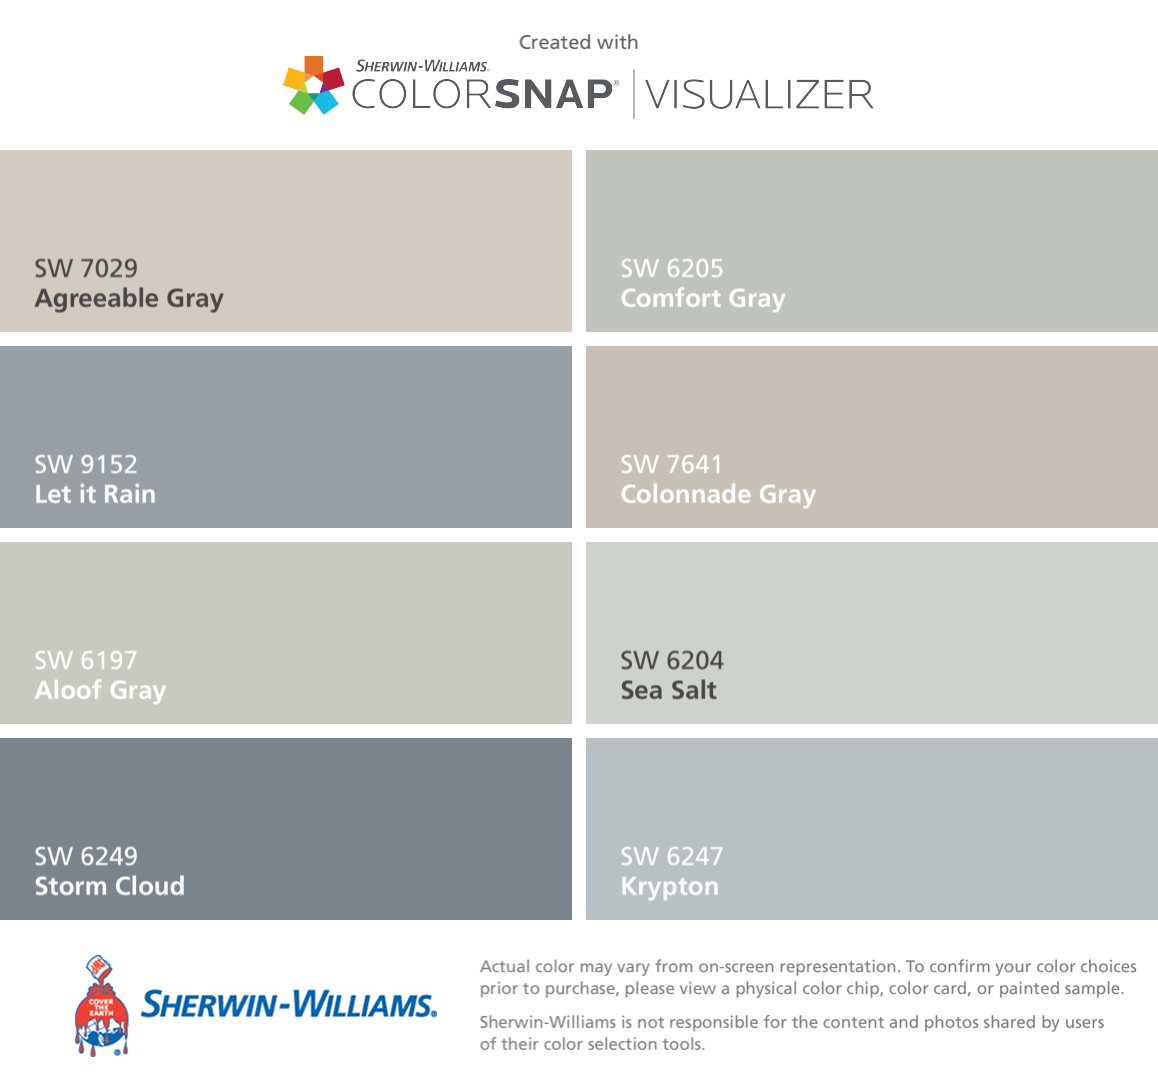 Colorsnap visualizer for web ideas color visualizers Online visualizer